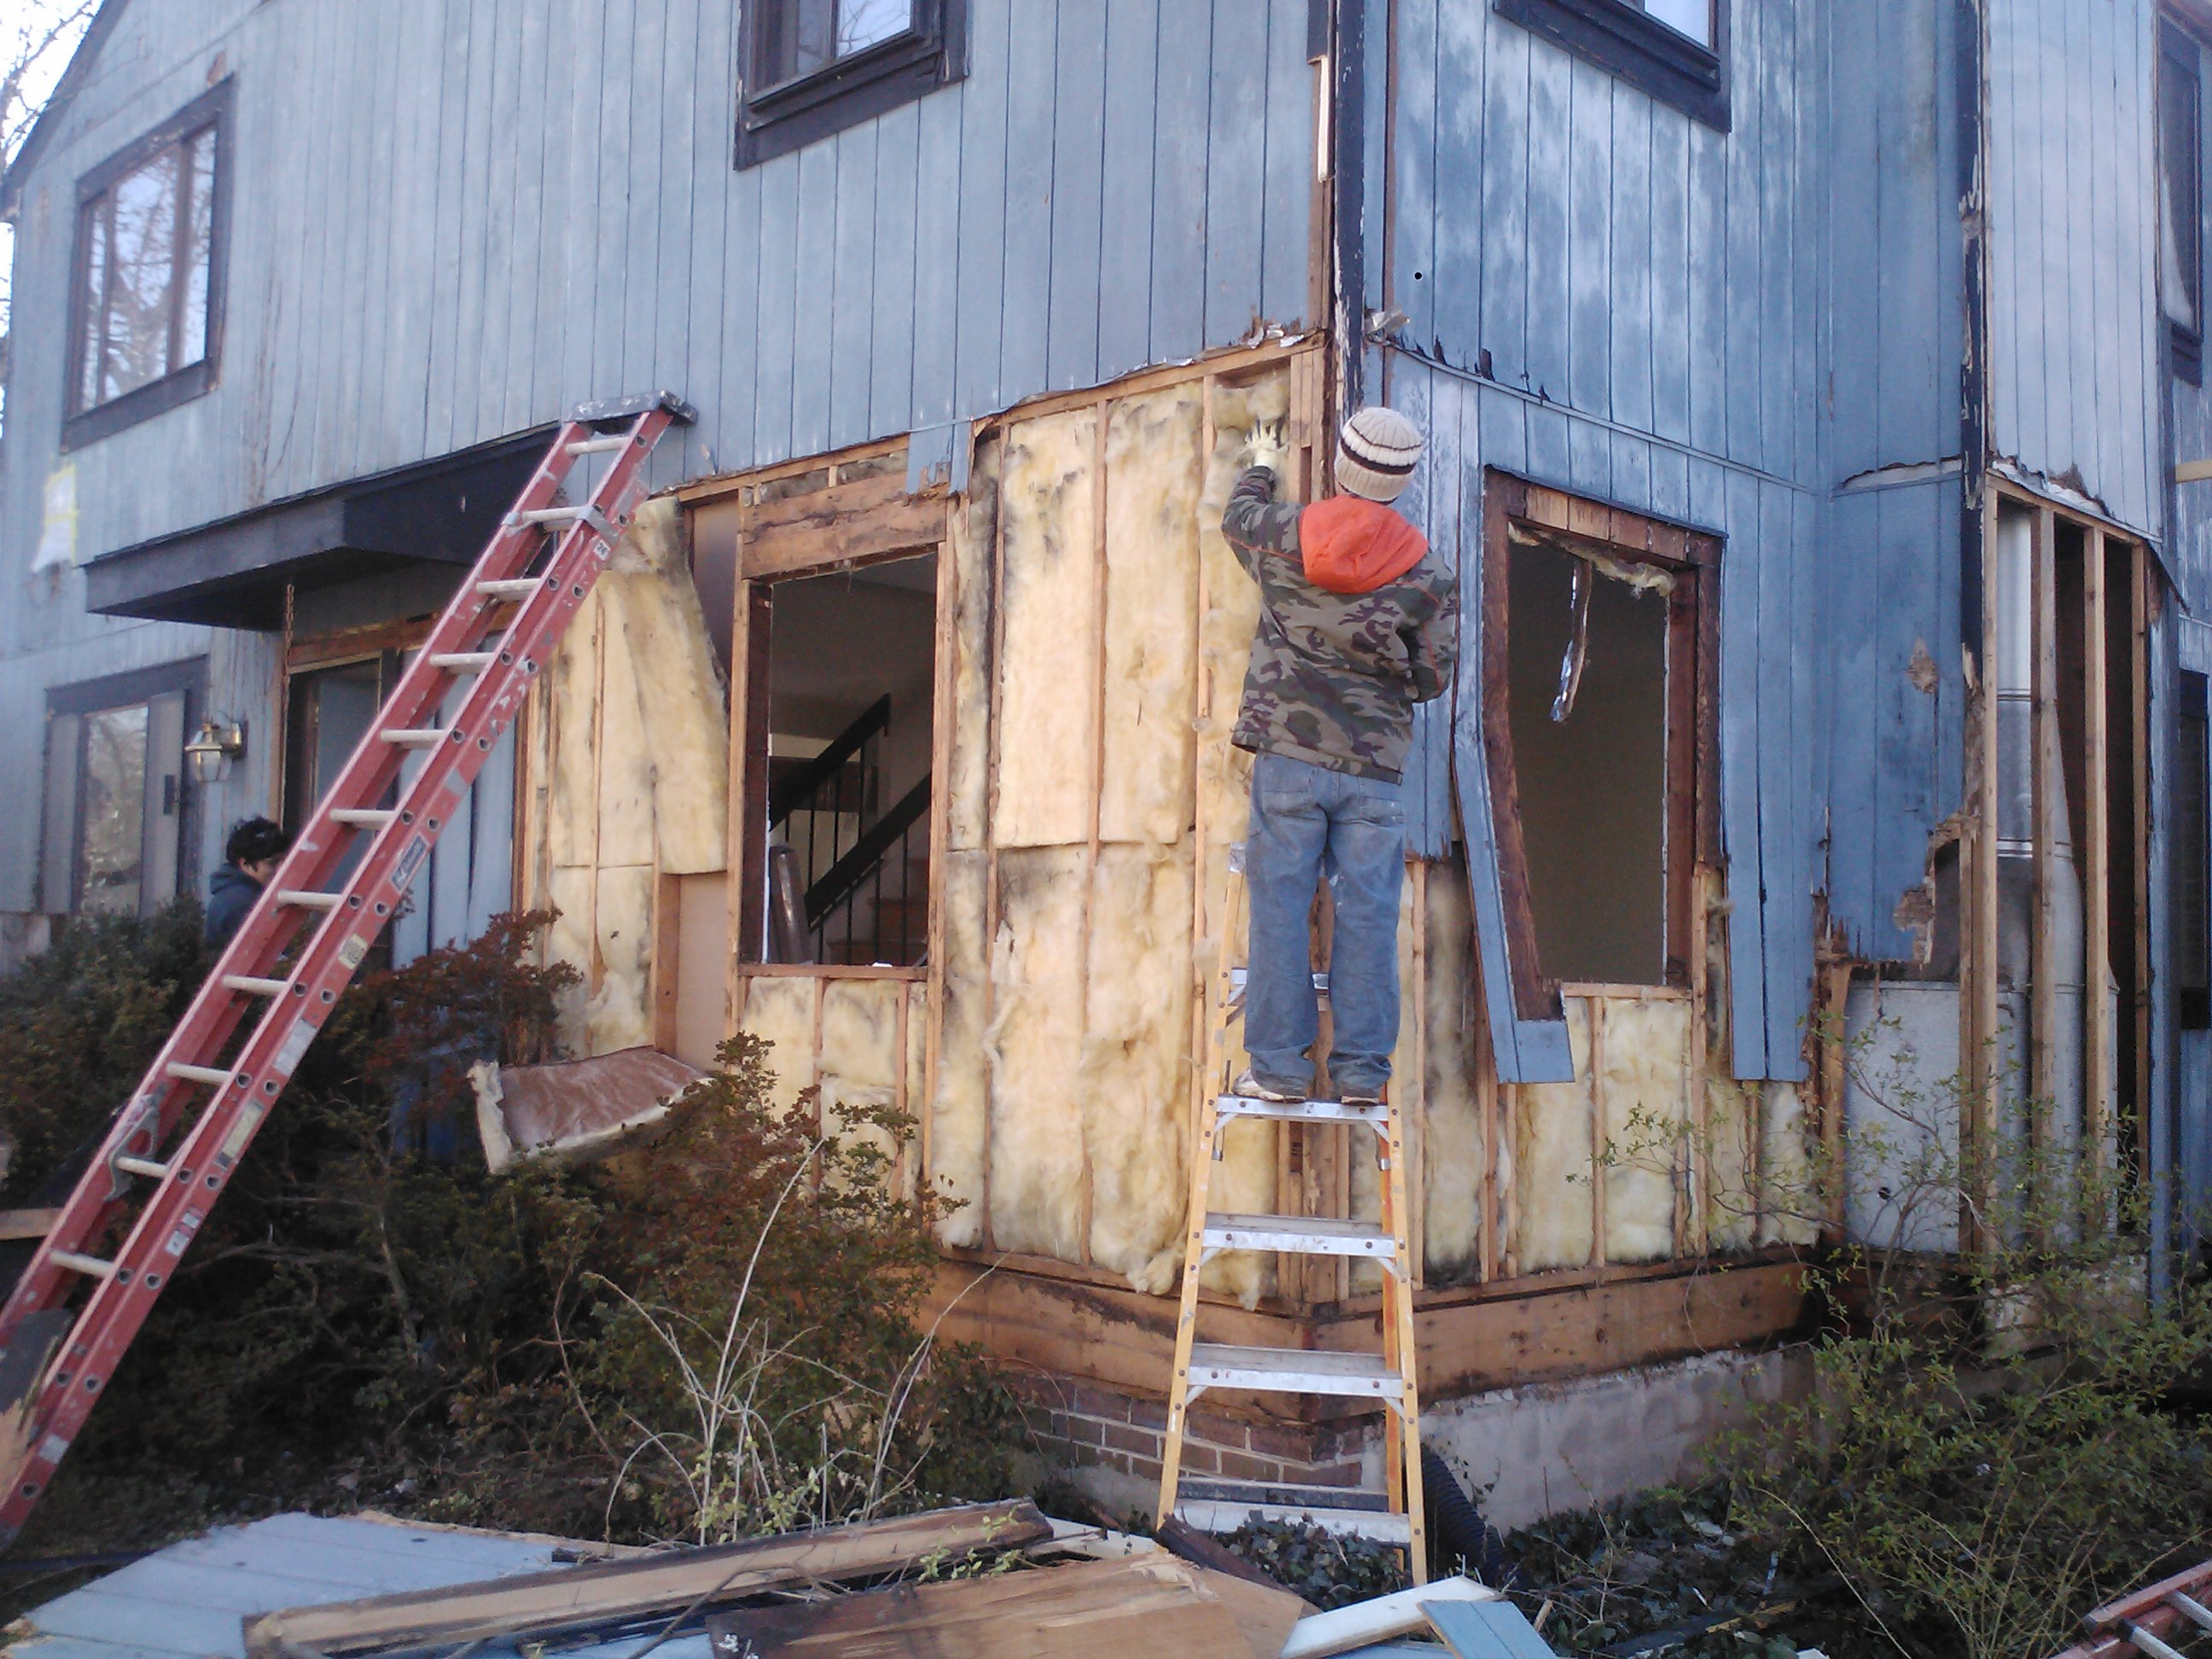 Gray After Ripping Out We Replaced Insulation Wherever Re Was Acavity Made It More Zip System Zip Sheathing Optimal Enclosures T1 11 Siding On House T1 11 Siding Price houzz-03 T1 11 Siding